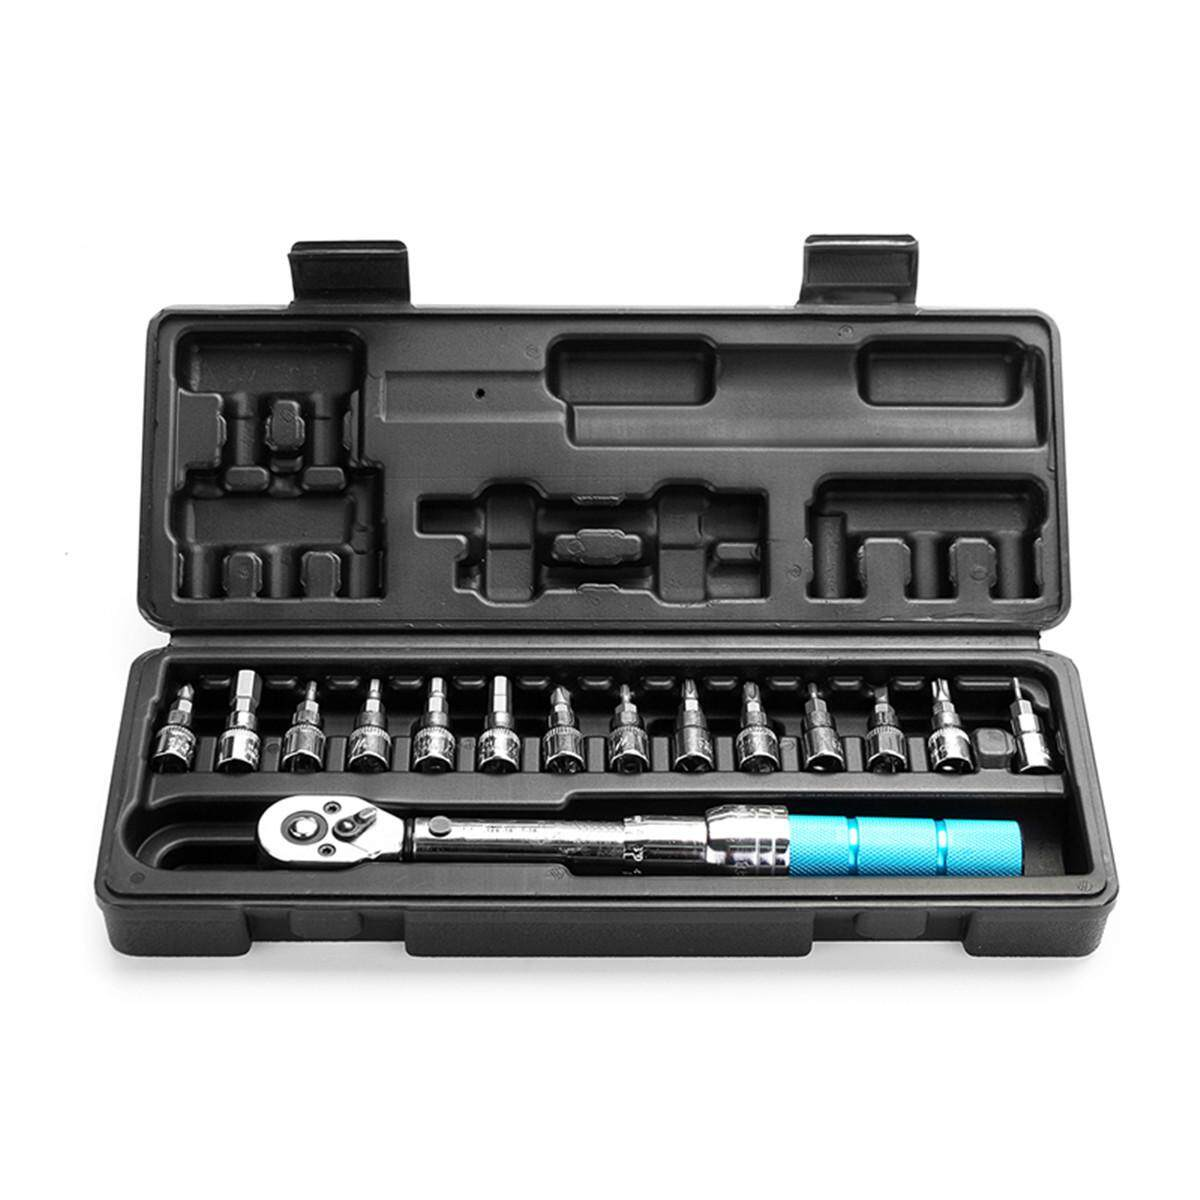 2~14NM 1/4 Bicycle Drive Torque wrench key tool Socket Set